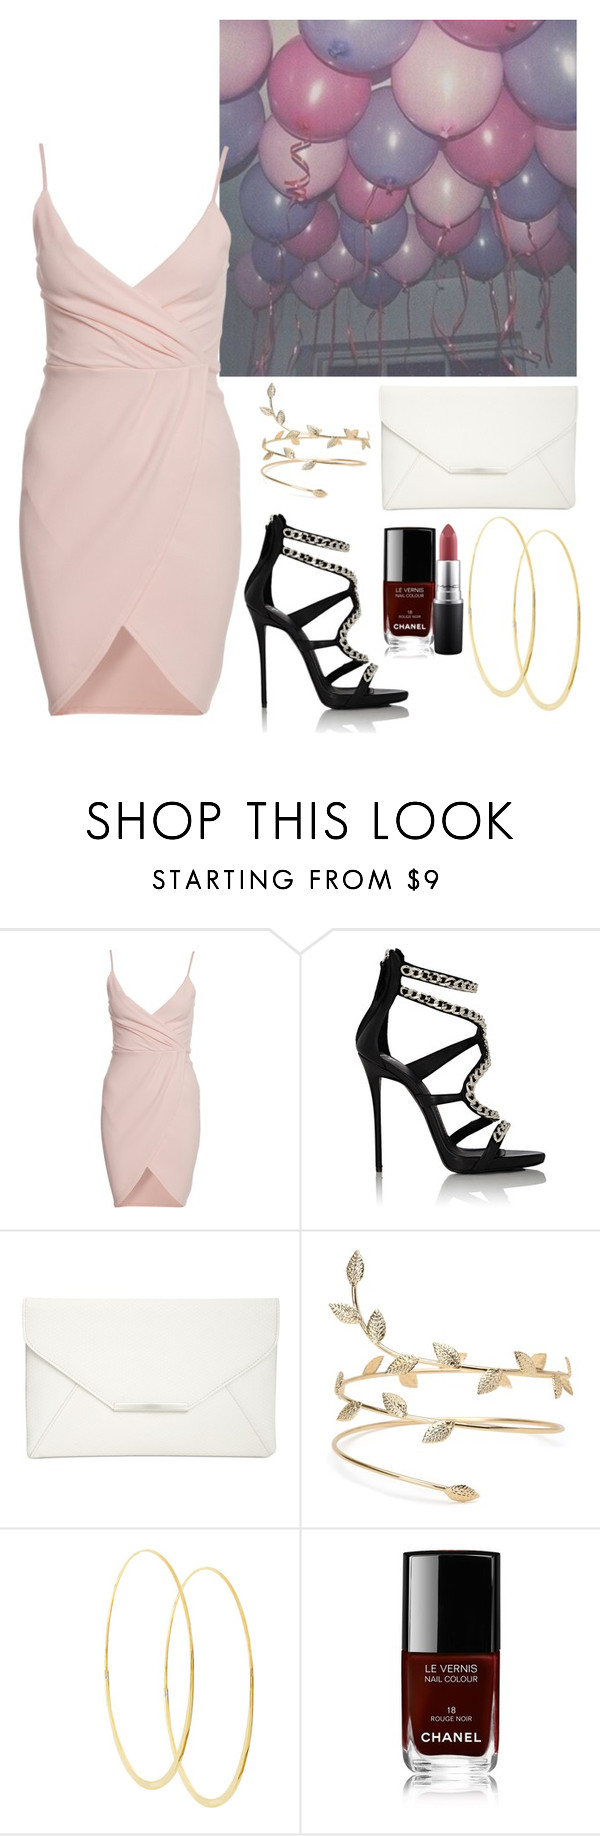 """It's Saturday and I wont be alone [Cheap thrills]"" by i-m-penguin-purple974 ❤ liked on Polyvore featuring Giuseppe Zanotti, Style & Co., Lana, Chanel, MAC Cosmetics, party, mac, giusepezanotti and cheapthrills"